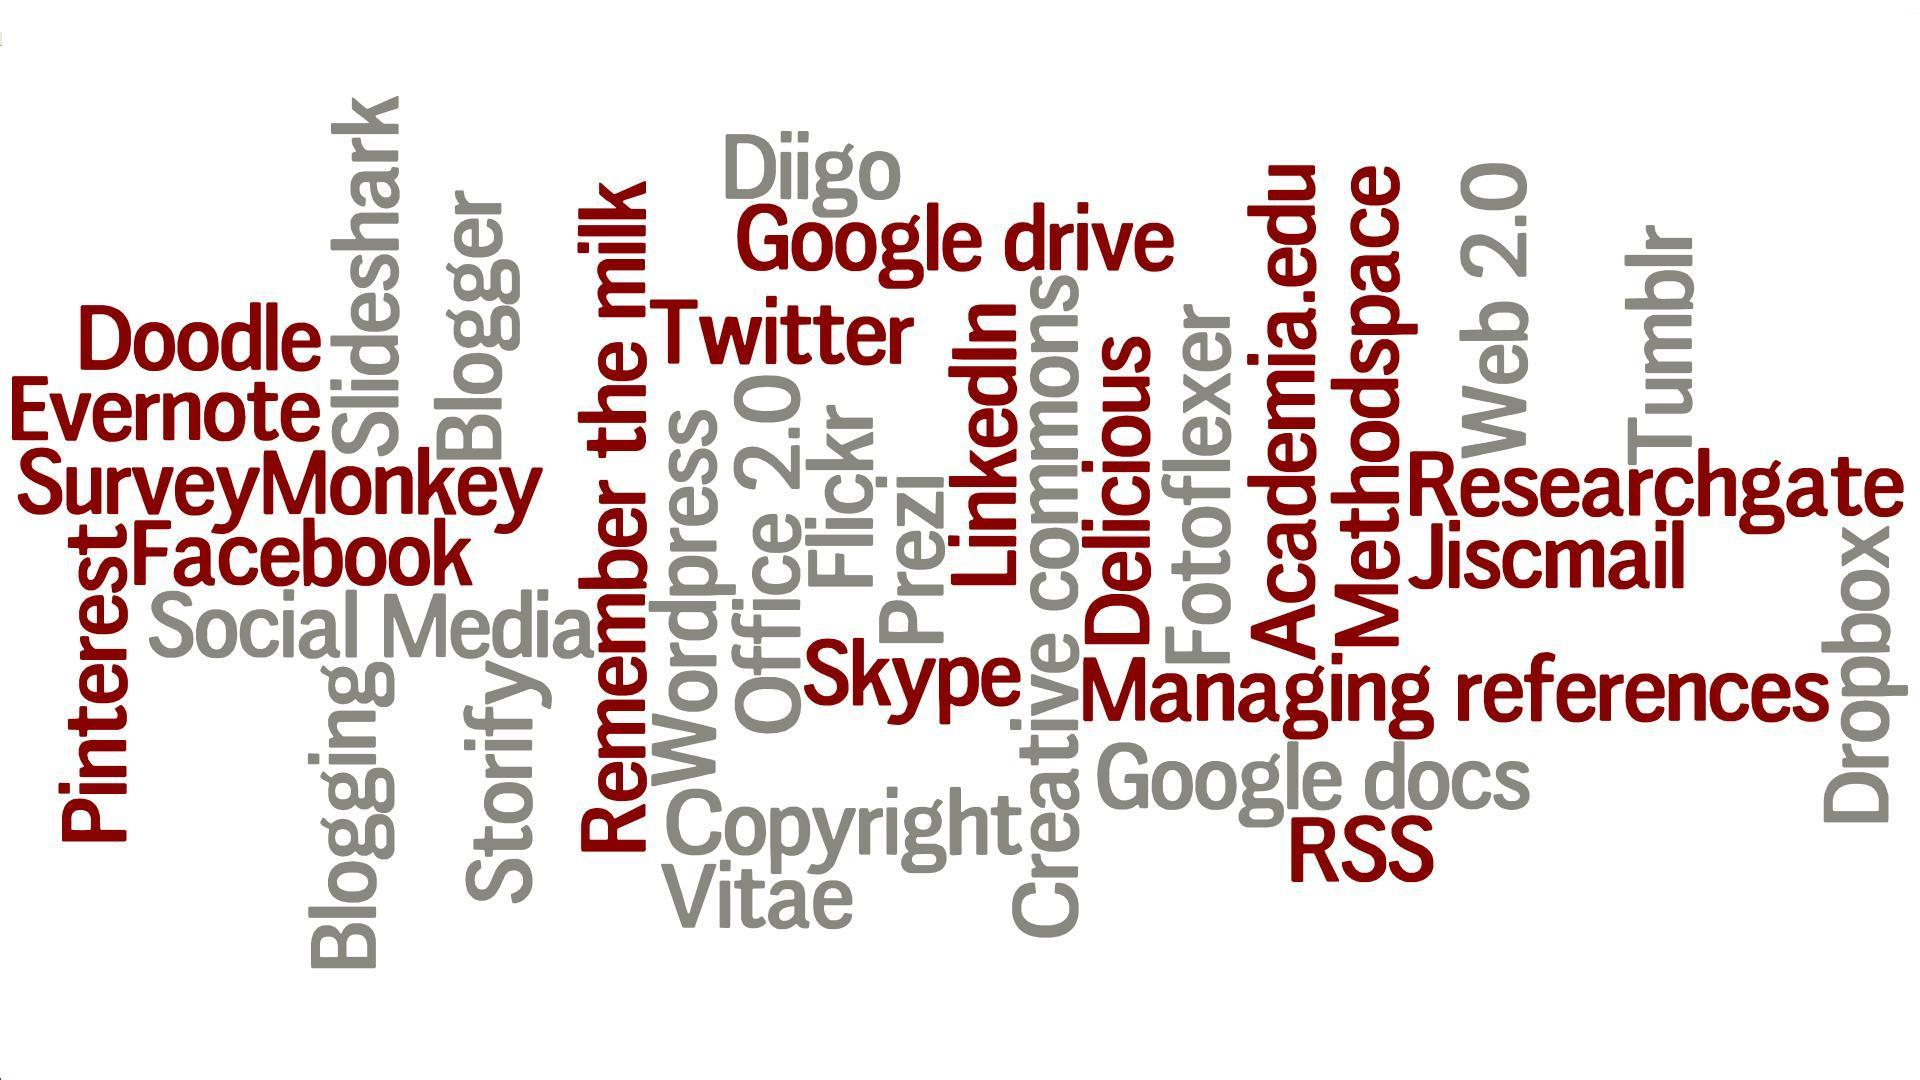 Social Media word cloud.